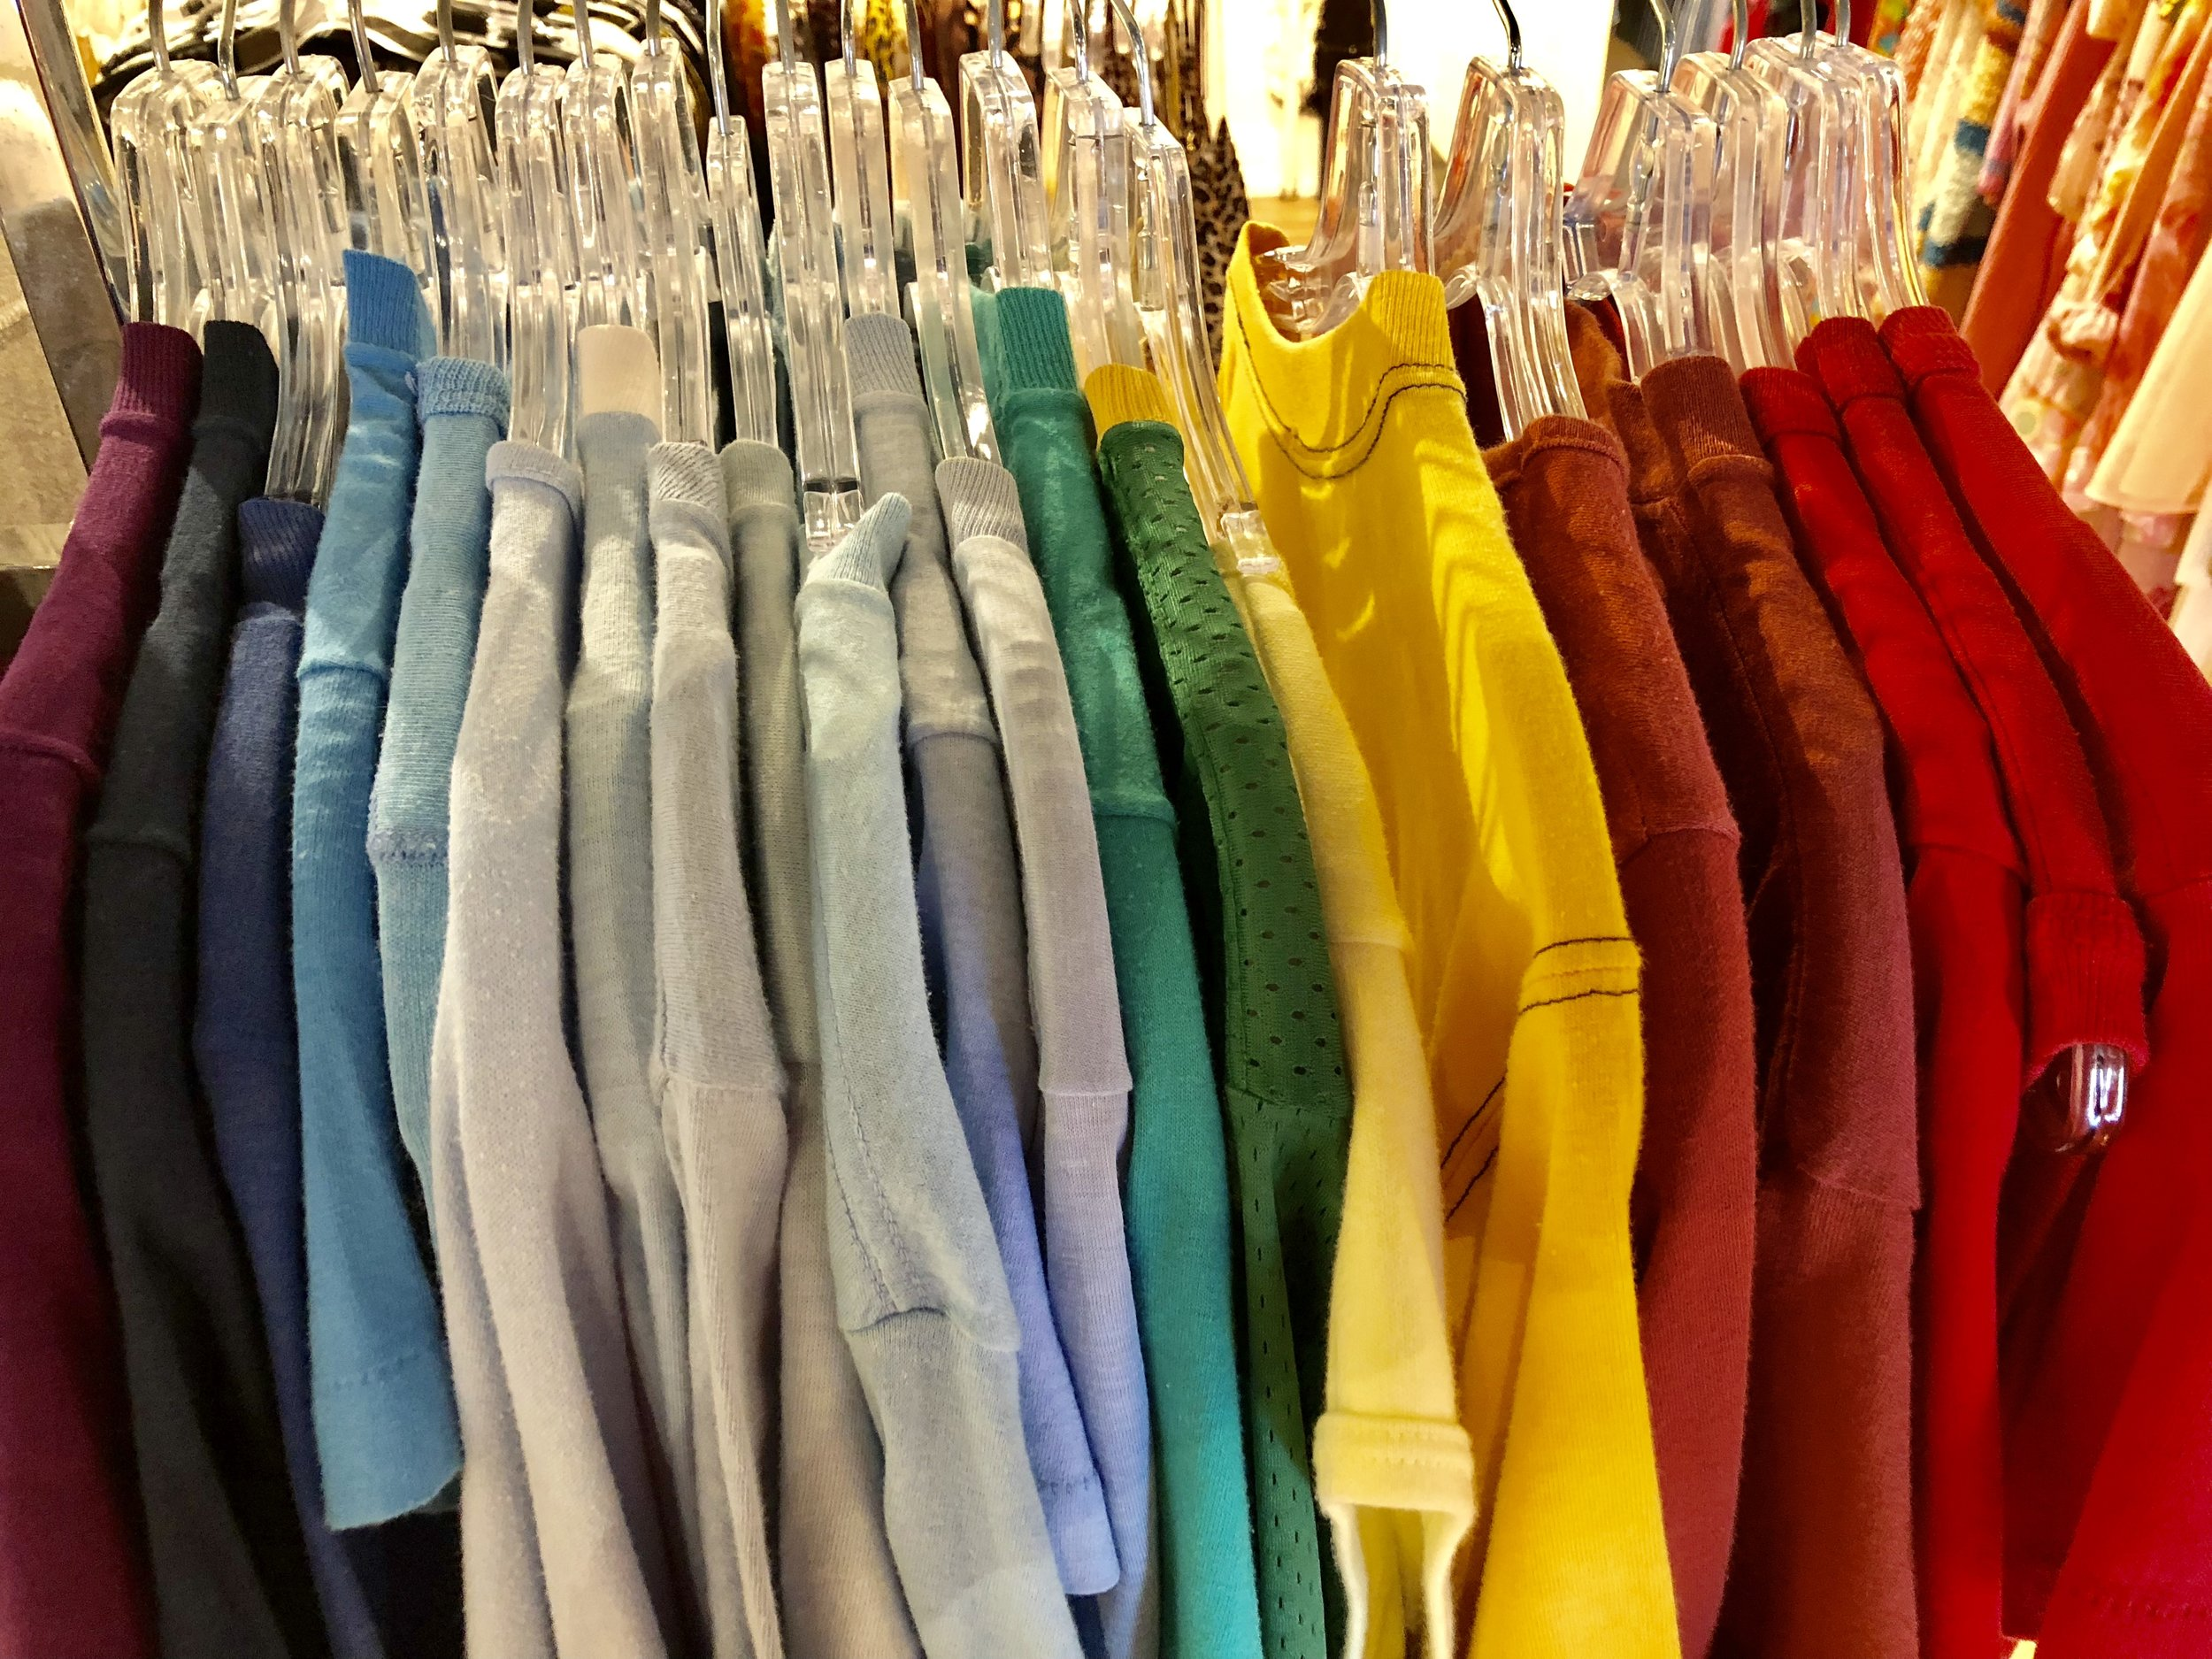 A colorful rack of t-shirts at Austin local shop, Prototype Vintage